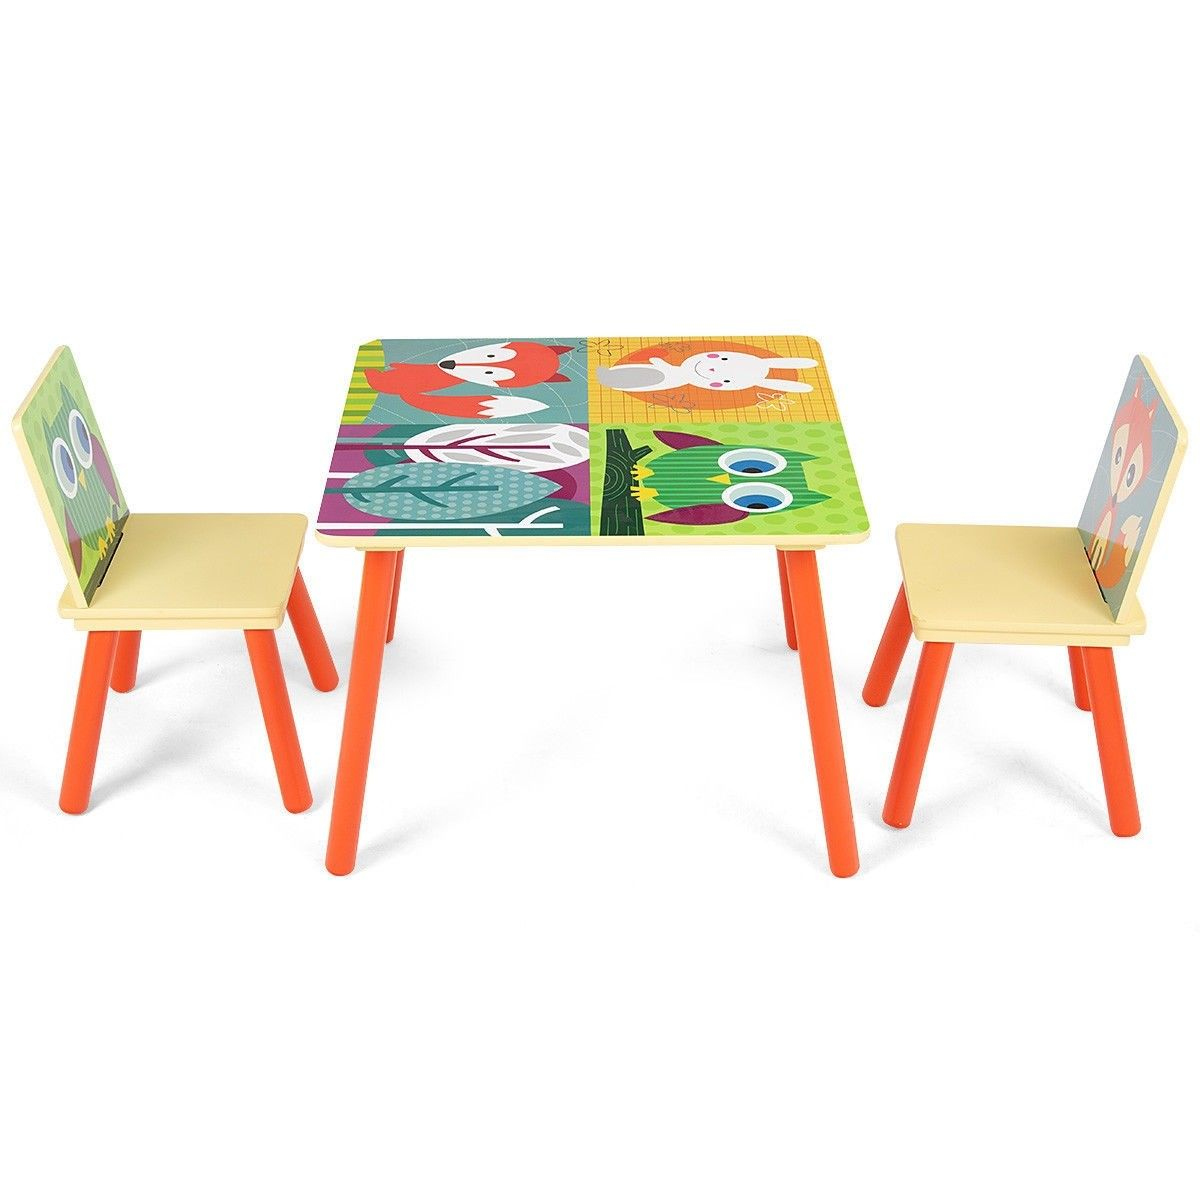 Wooden Cartoon Kids Table Chairs Set Of 2 Activity Table Desk Sets For Playing With Cartoon Kids Table Chair Set Toddler Table And Chairs Kids Table And Chairs